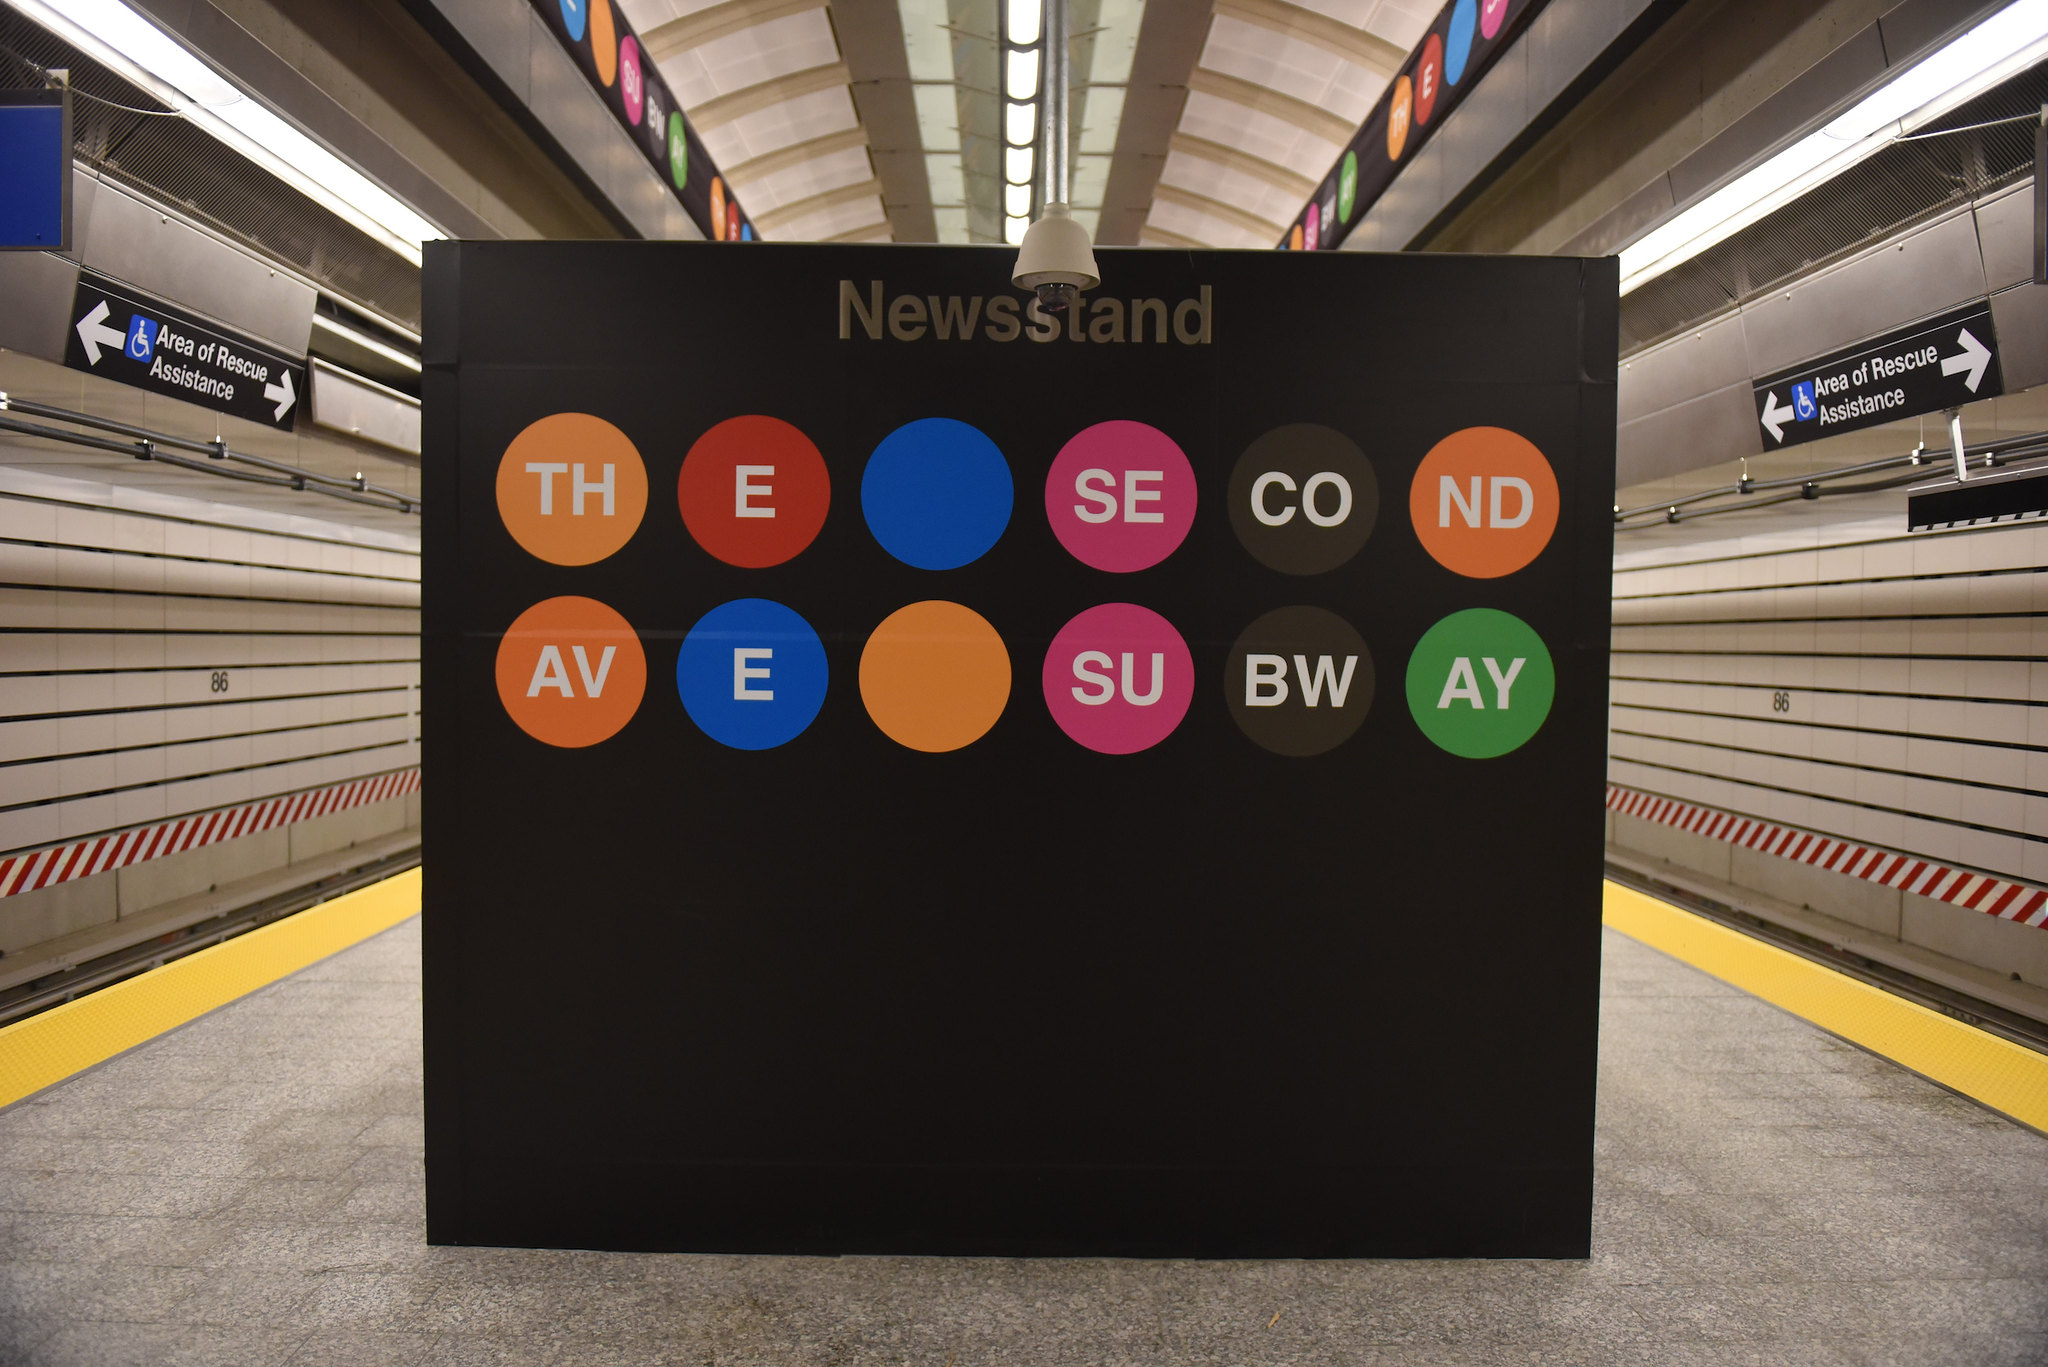 86th Street Second Avenue Subway Station